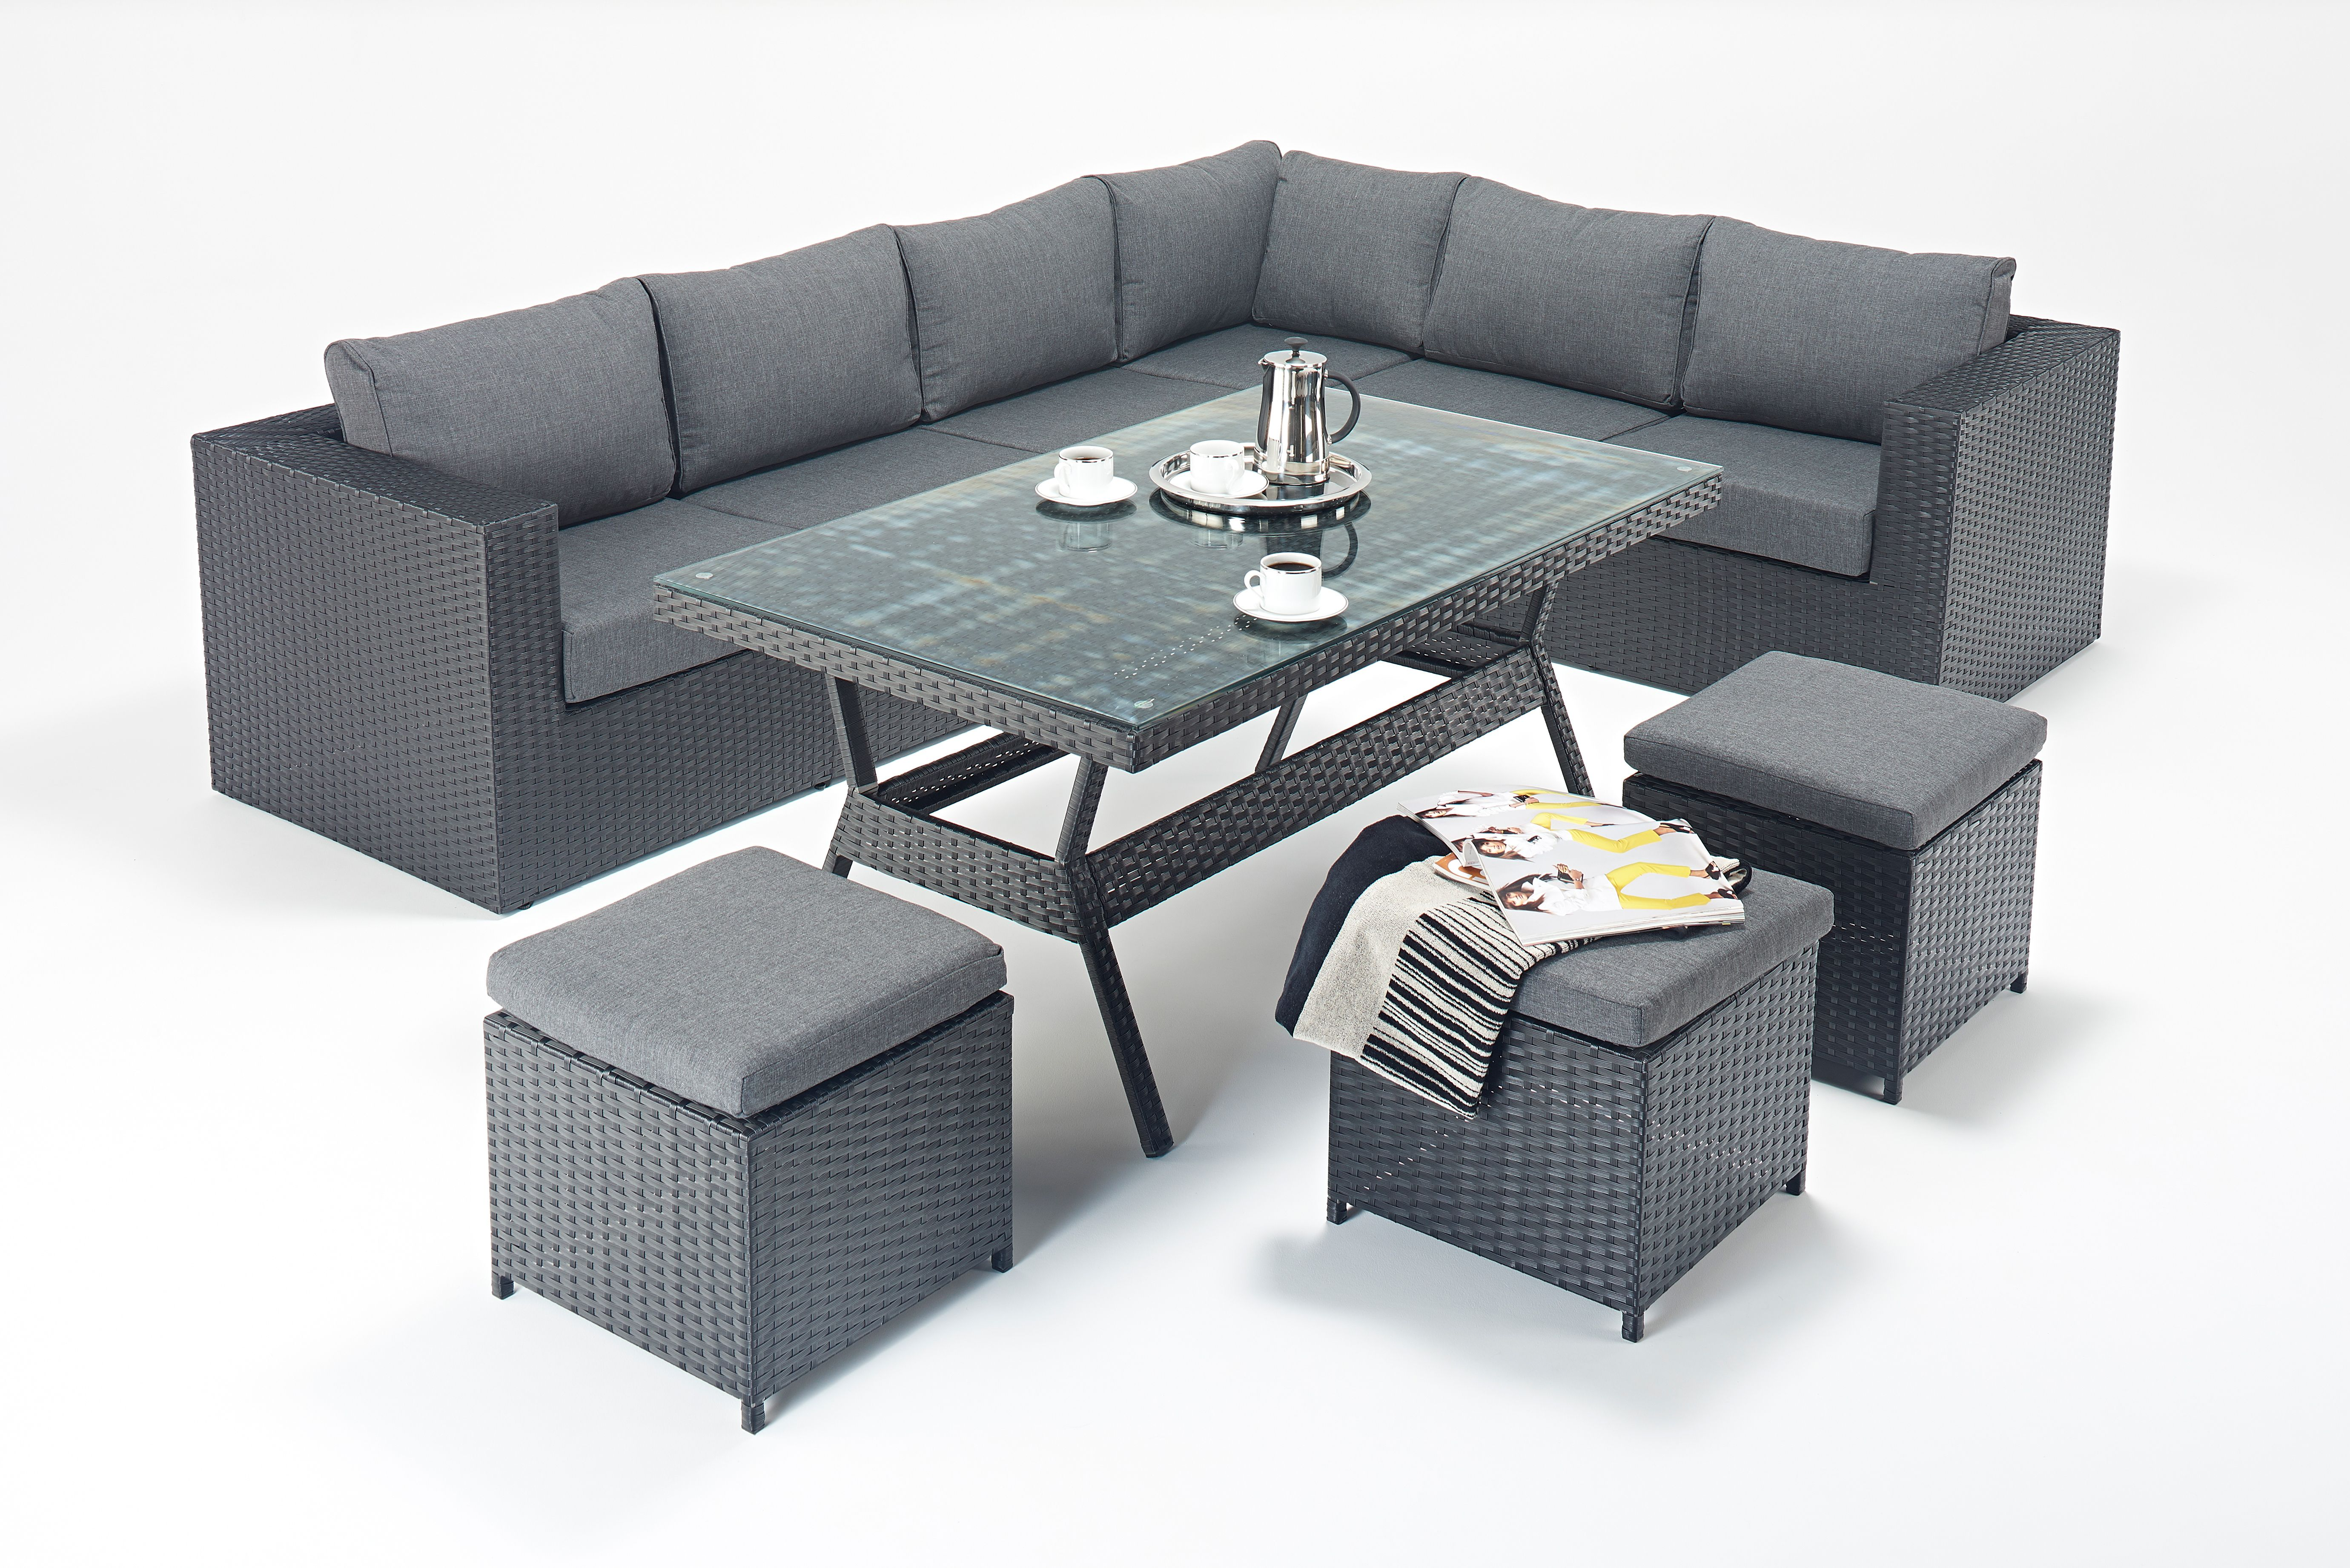 Black flat weave polyrattan with charcoal cushions